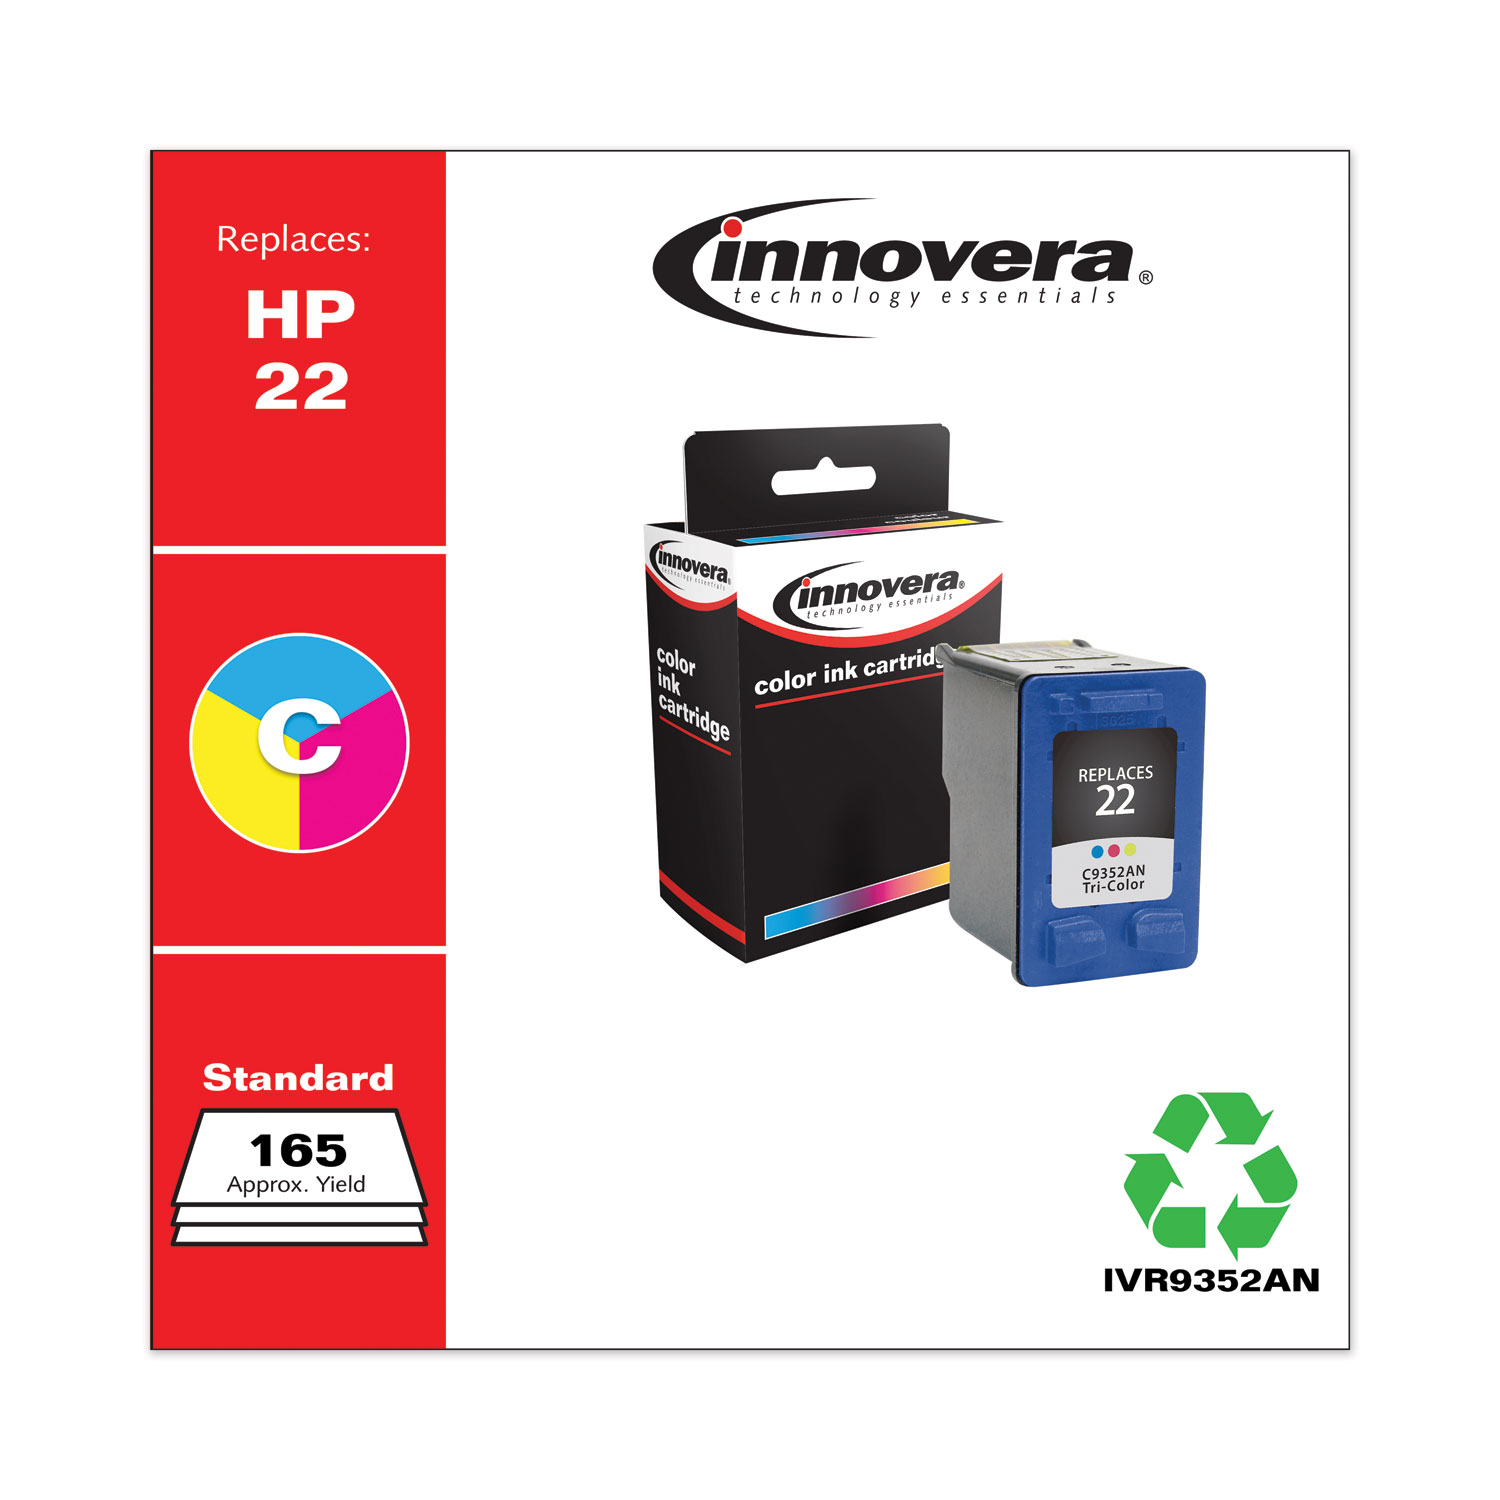 Remanufactured Tri-Color Ink, Replacement for HP 22 (C9352AN), 165 Page-Yield IVR9352AN